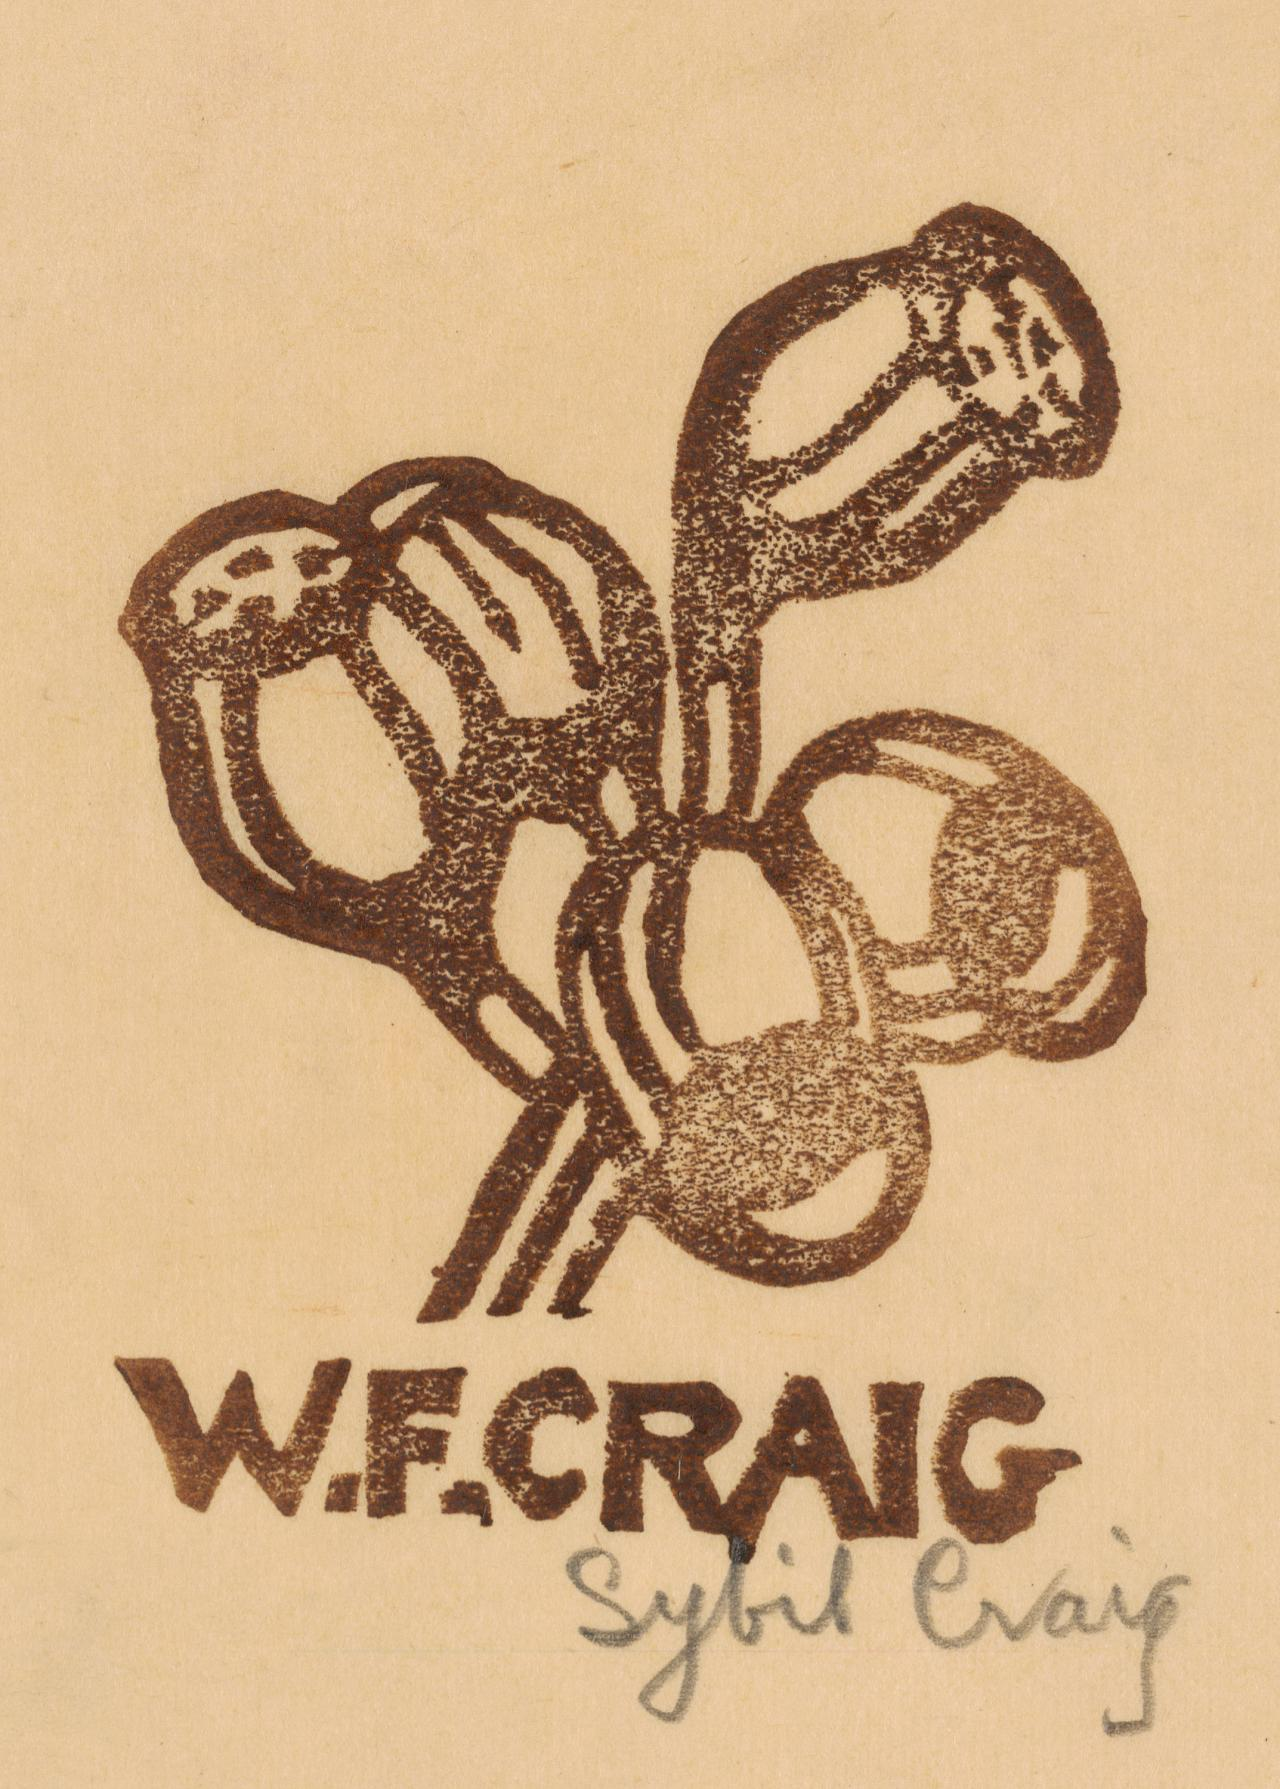 Bookplate of W.F. Craig (gum-nuts)